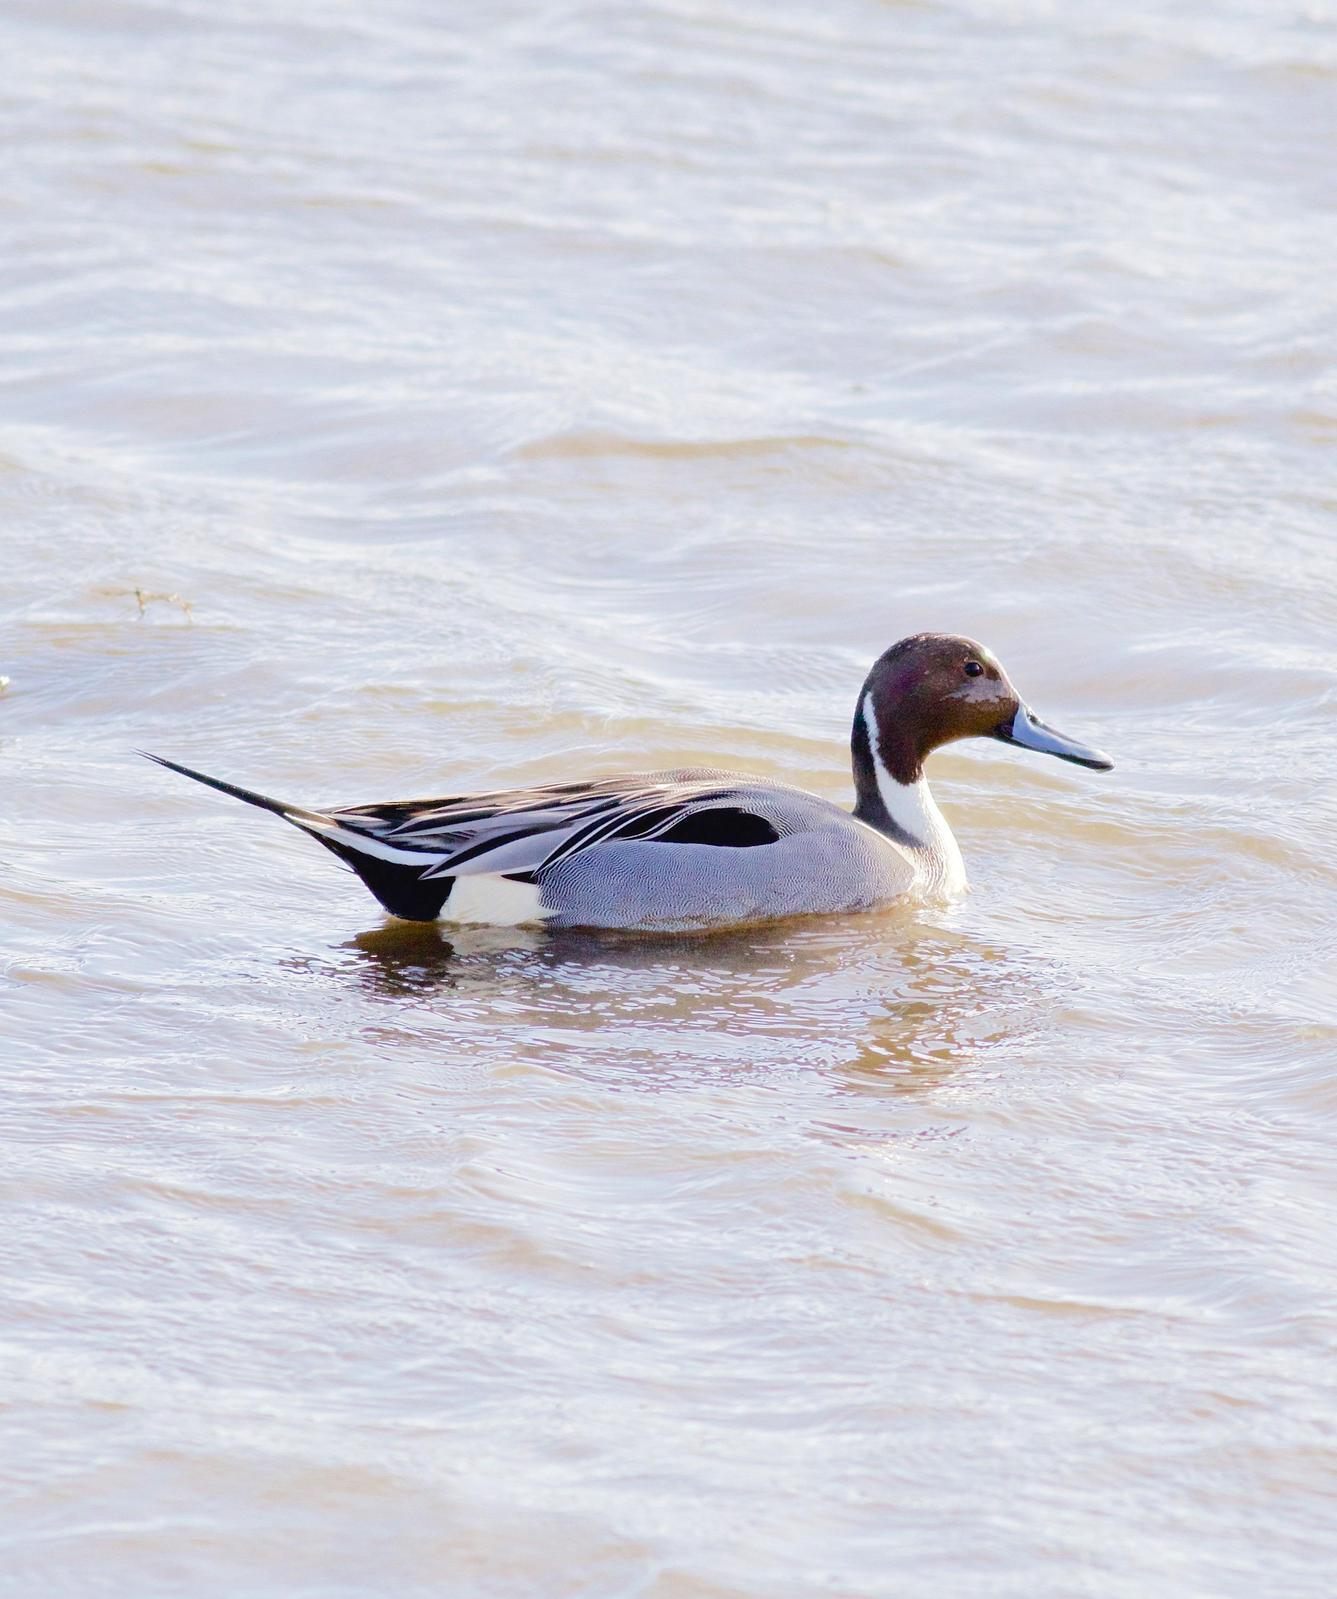 Northern Pintail Photo by Kathryn Keith